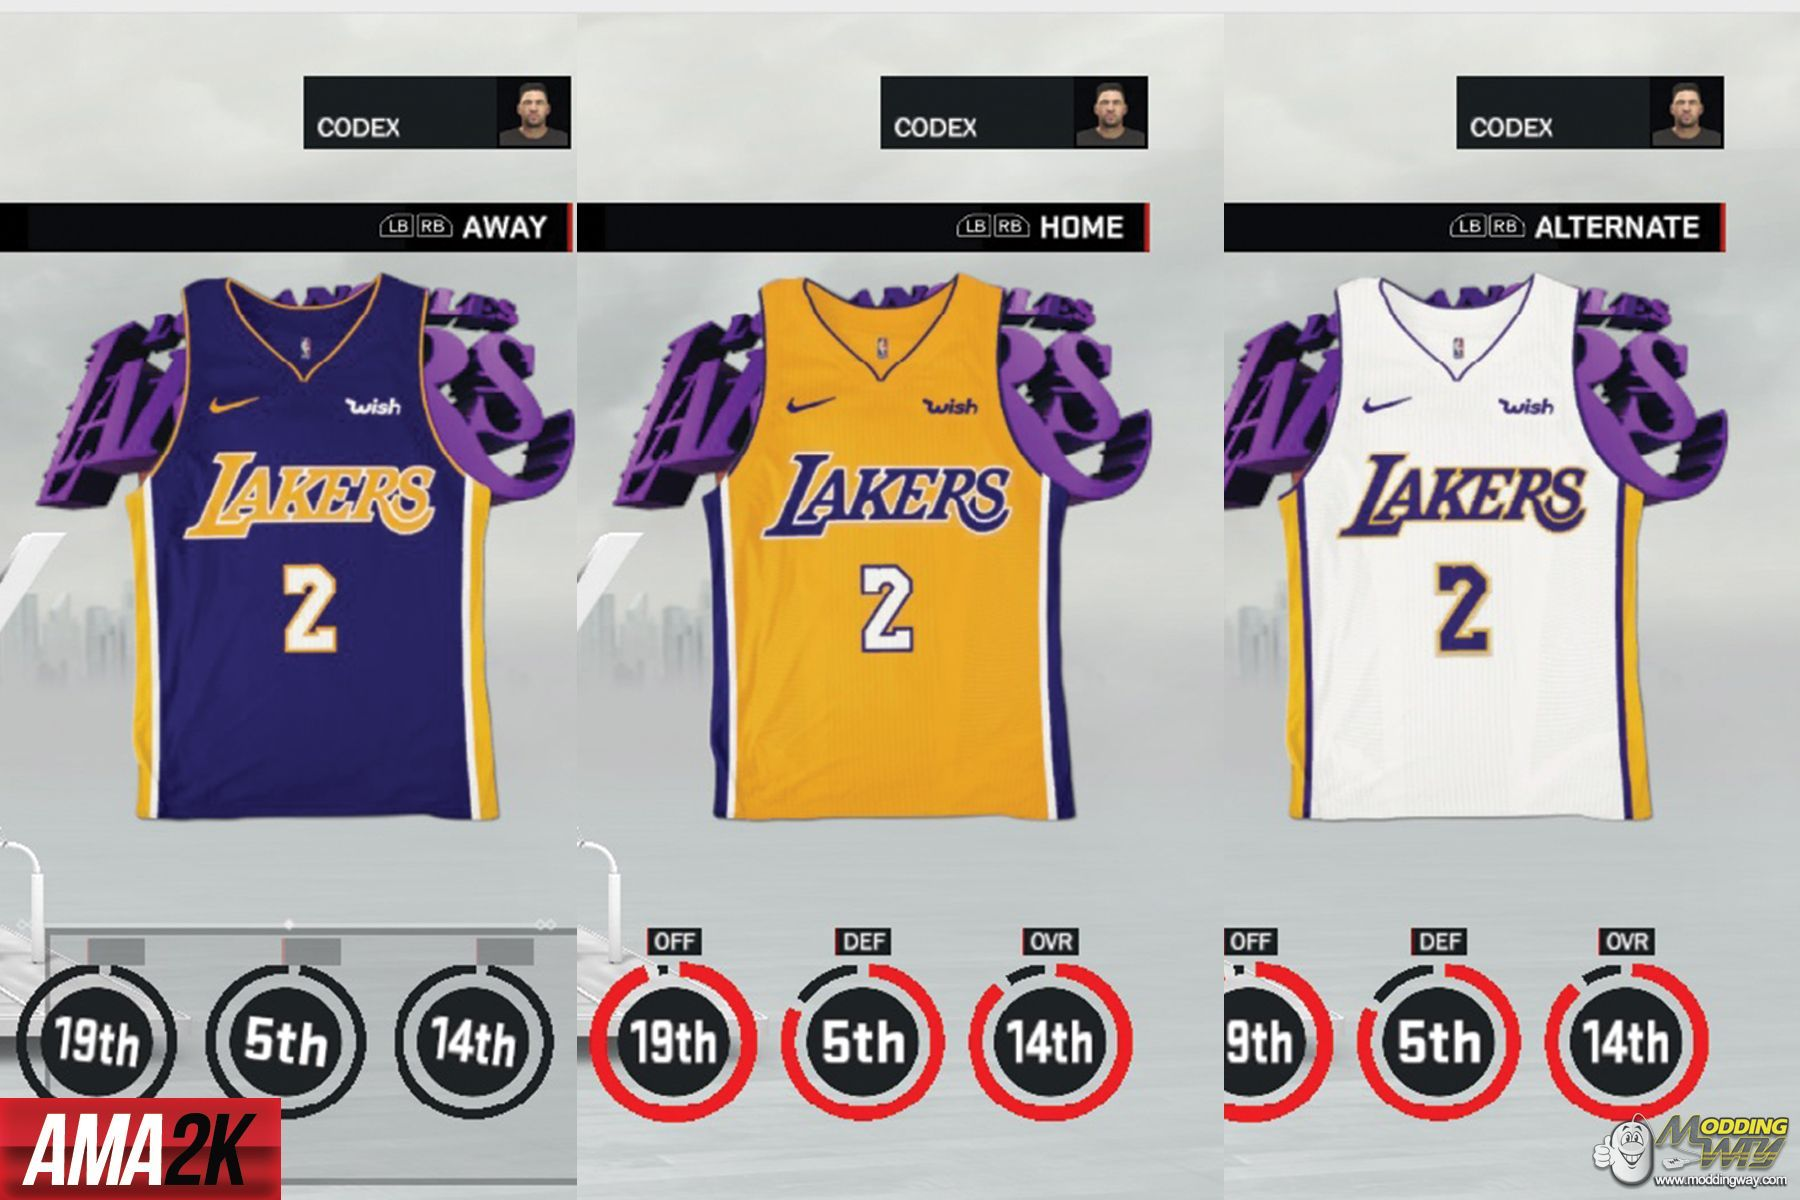 f26928c9af1 ... purple fa952 db257; italy nba 2k17 jerseys los angeles lakers realistic  jersey icons home away statement 2018 nba 2k17